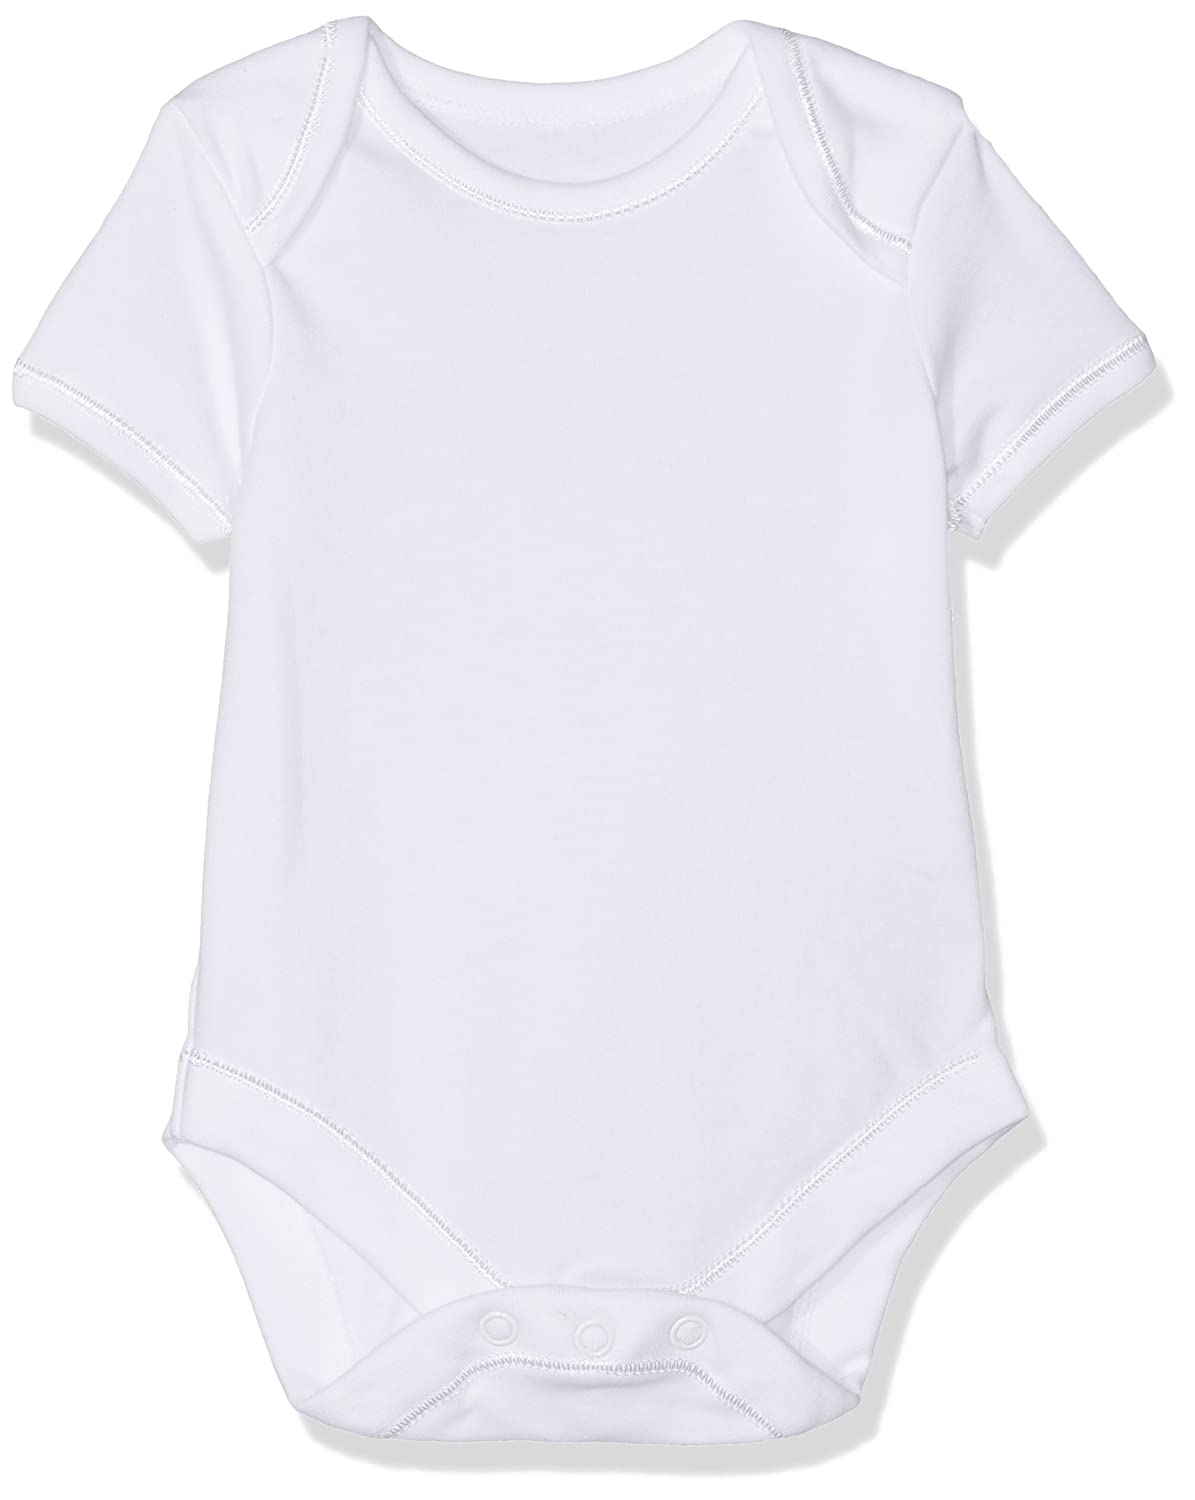 My First Short Sleeve Bodysuits - 7 Pack Mothercare KA041